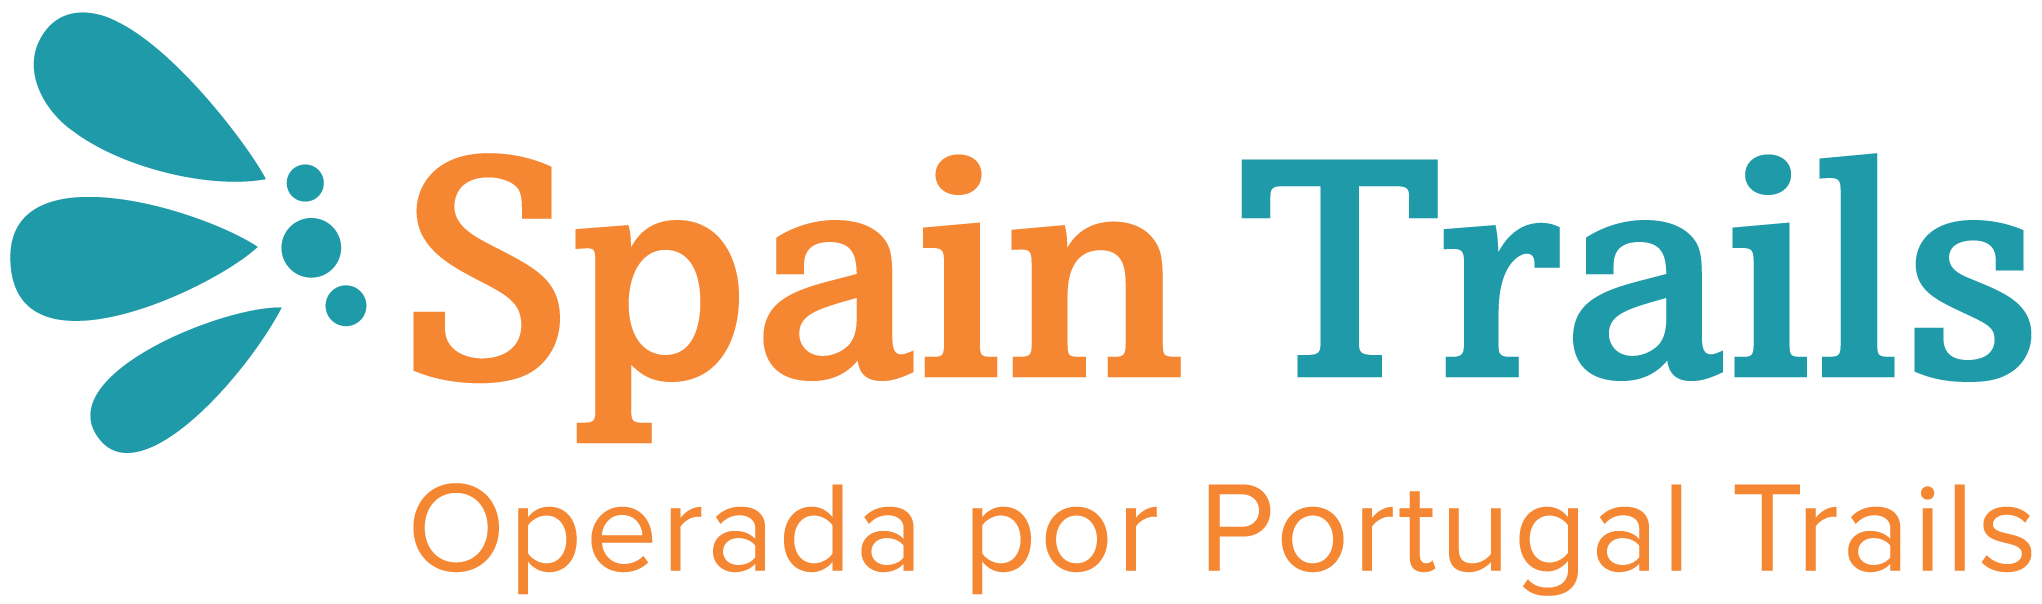 Spain Trails logo